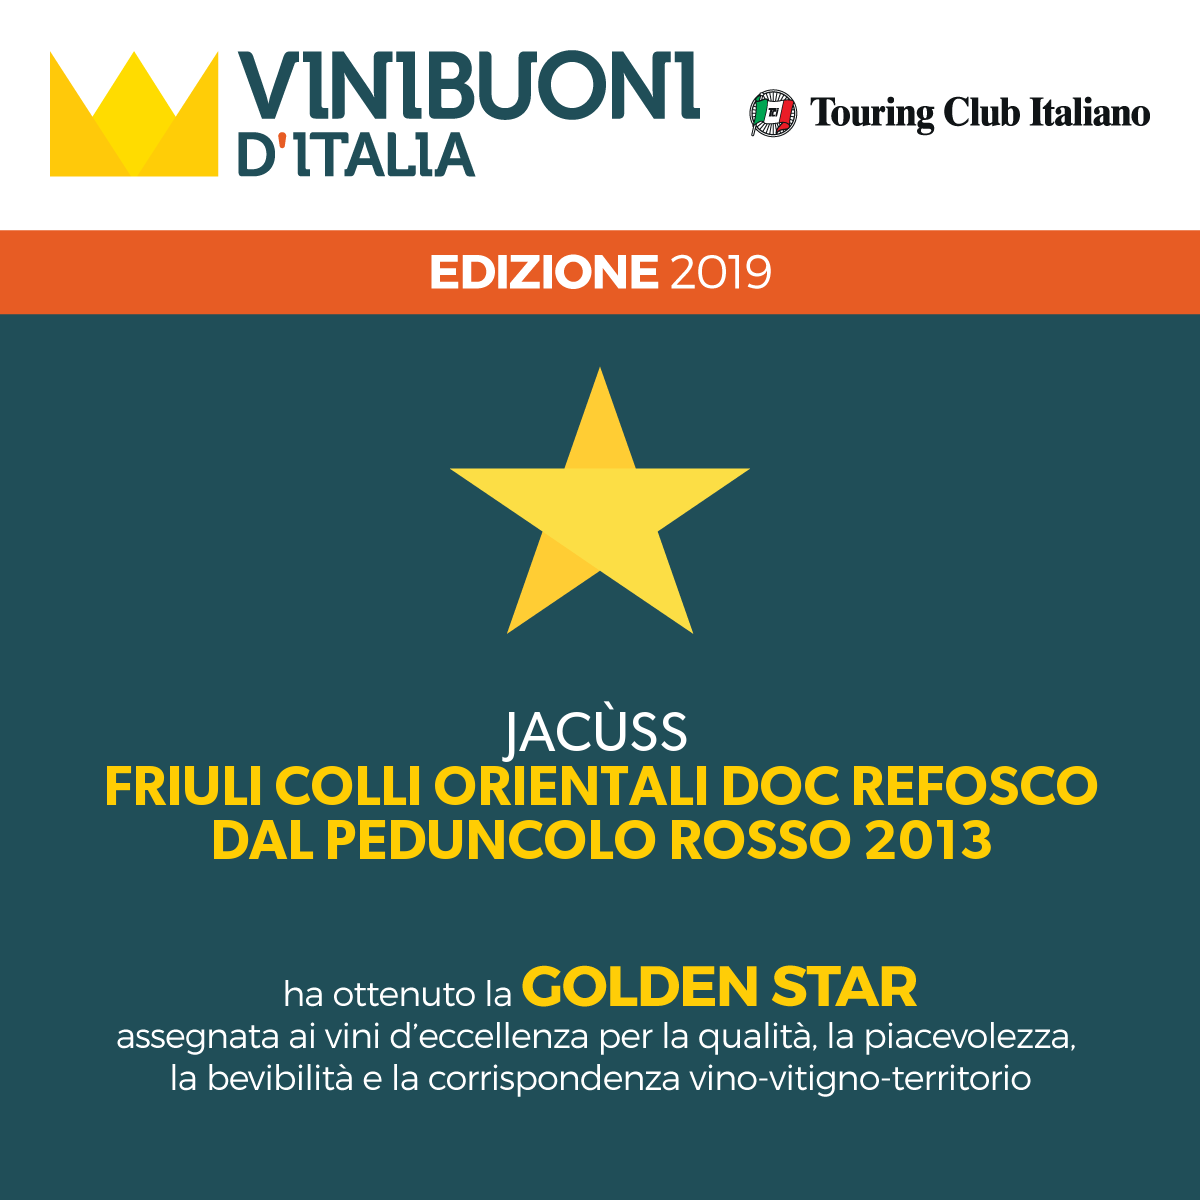 golden star vinibuoni 2700